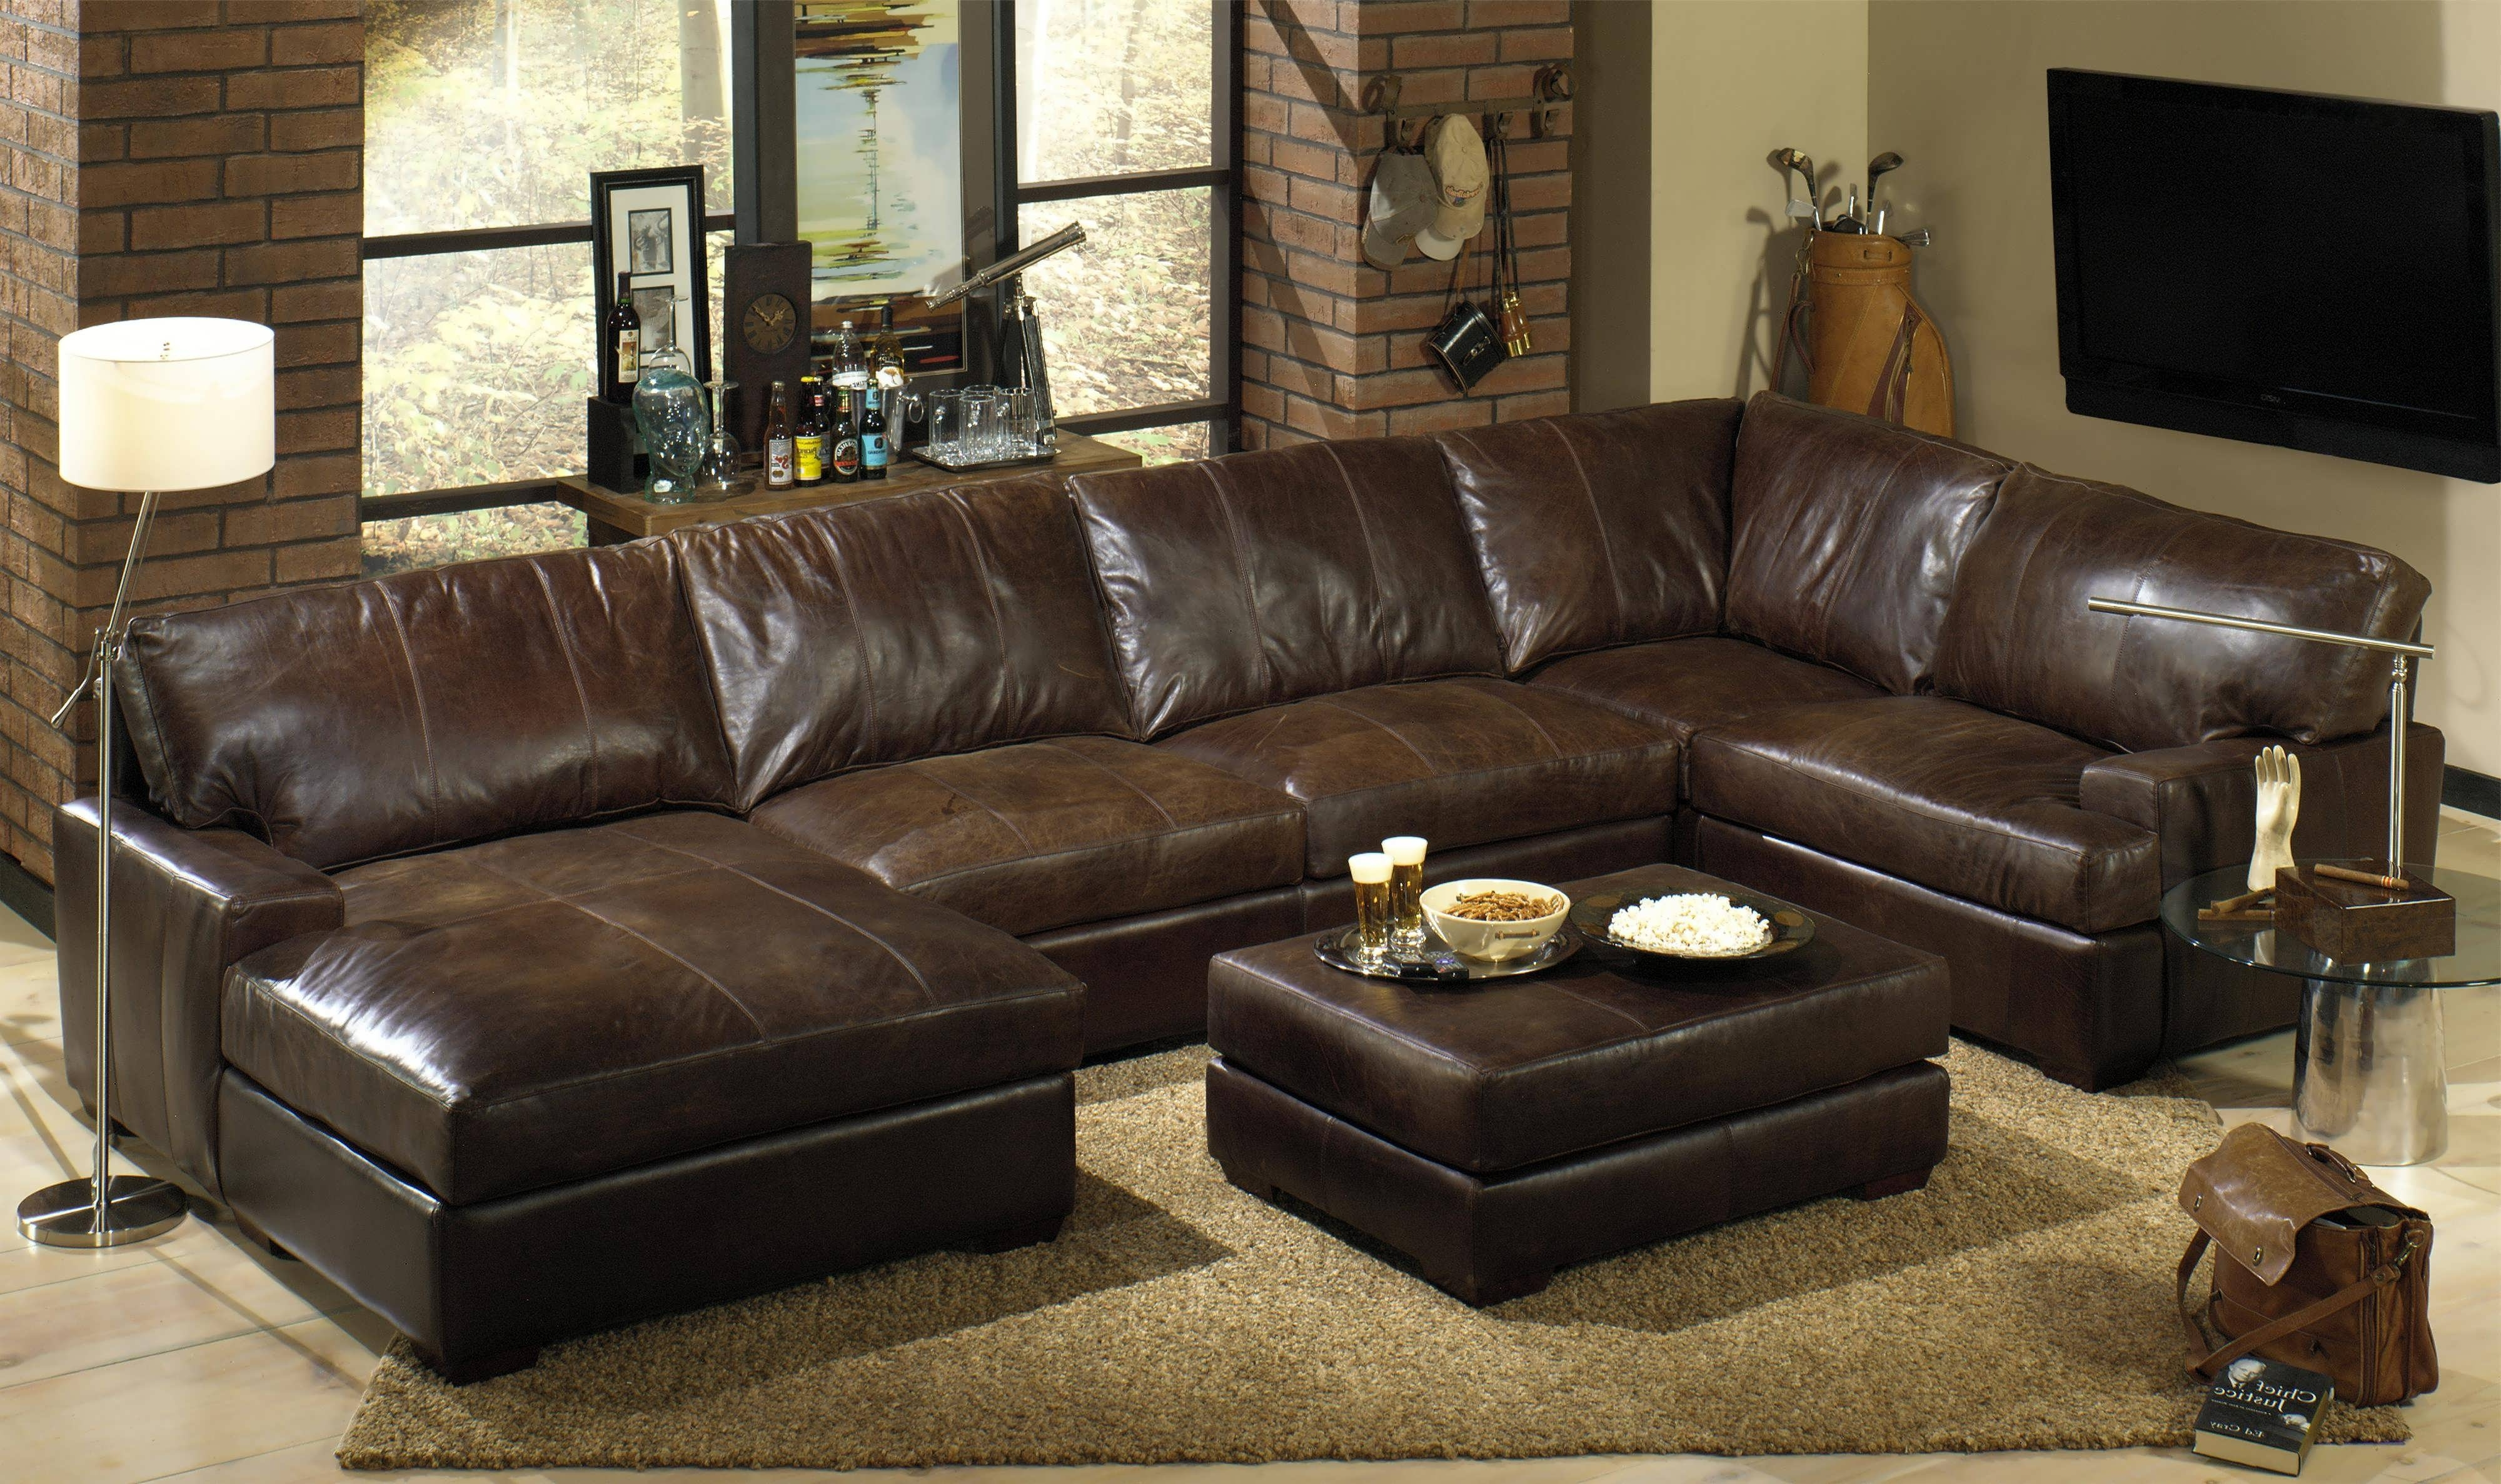 Sofa : Tan Sectional Couch Leather Sectional Sofa With Recliner Throughout Most Popular Leather Sectional Sleeper Sofas With Chaise (View 9 of 15)